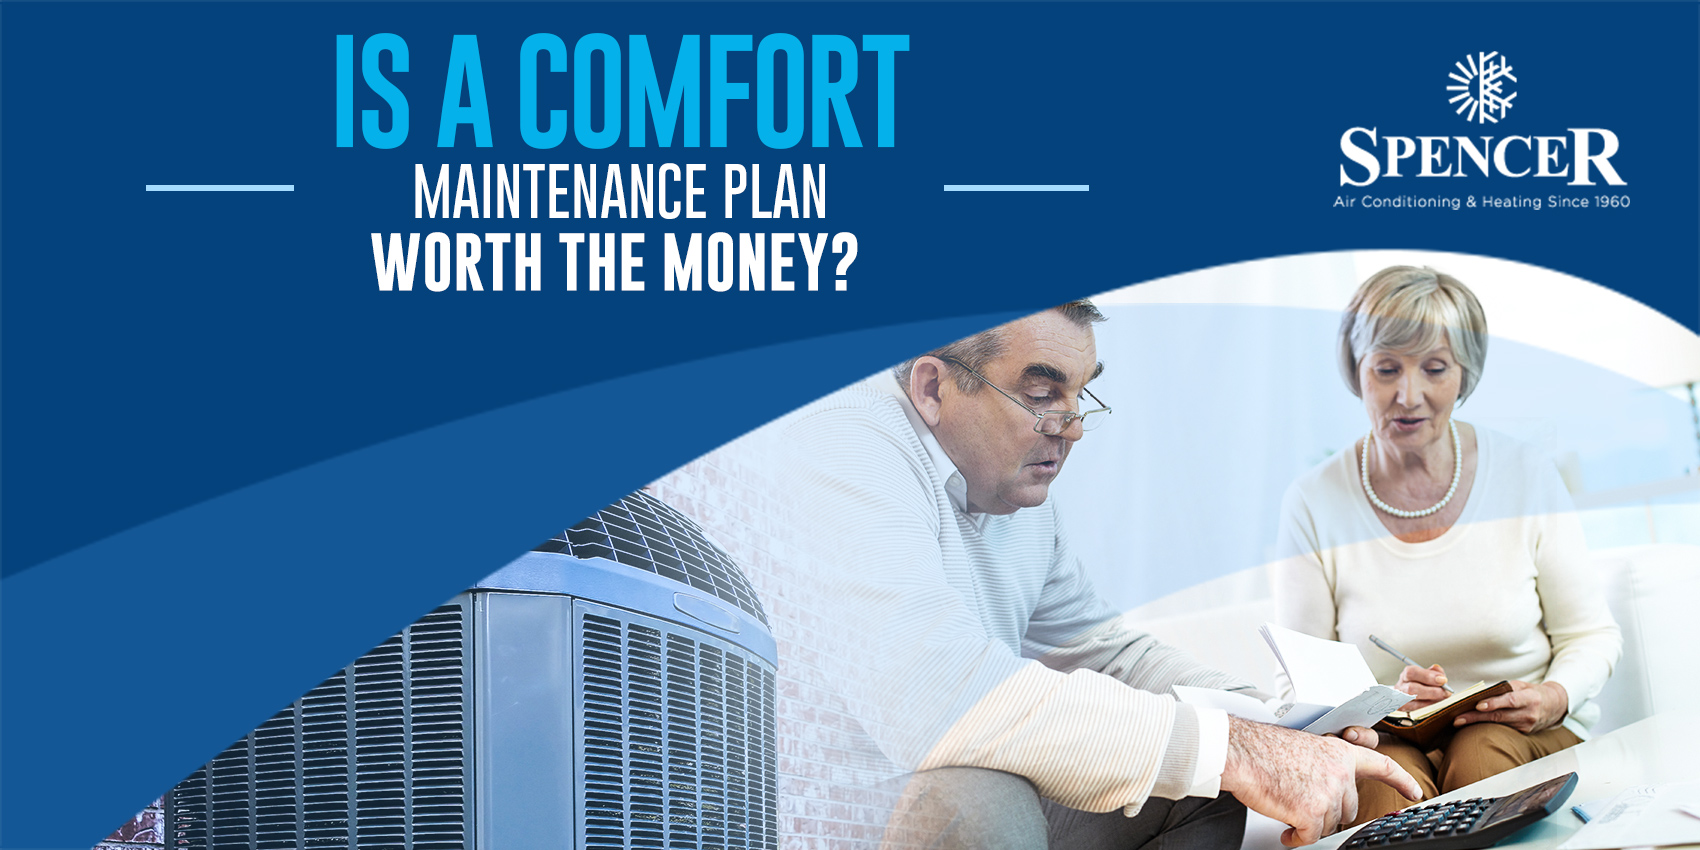 Is A Comfort Maintenance Plan Worth the Money?